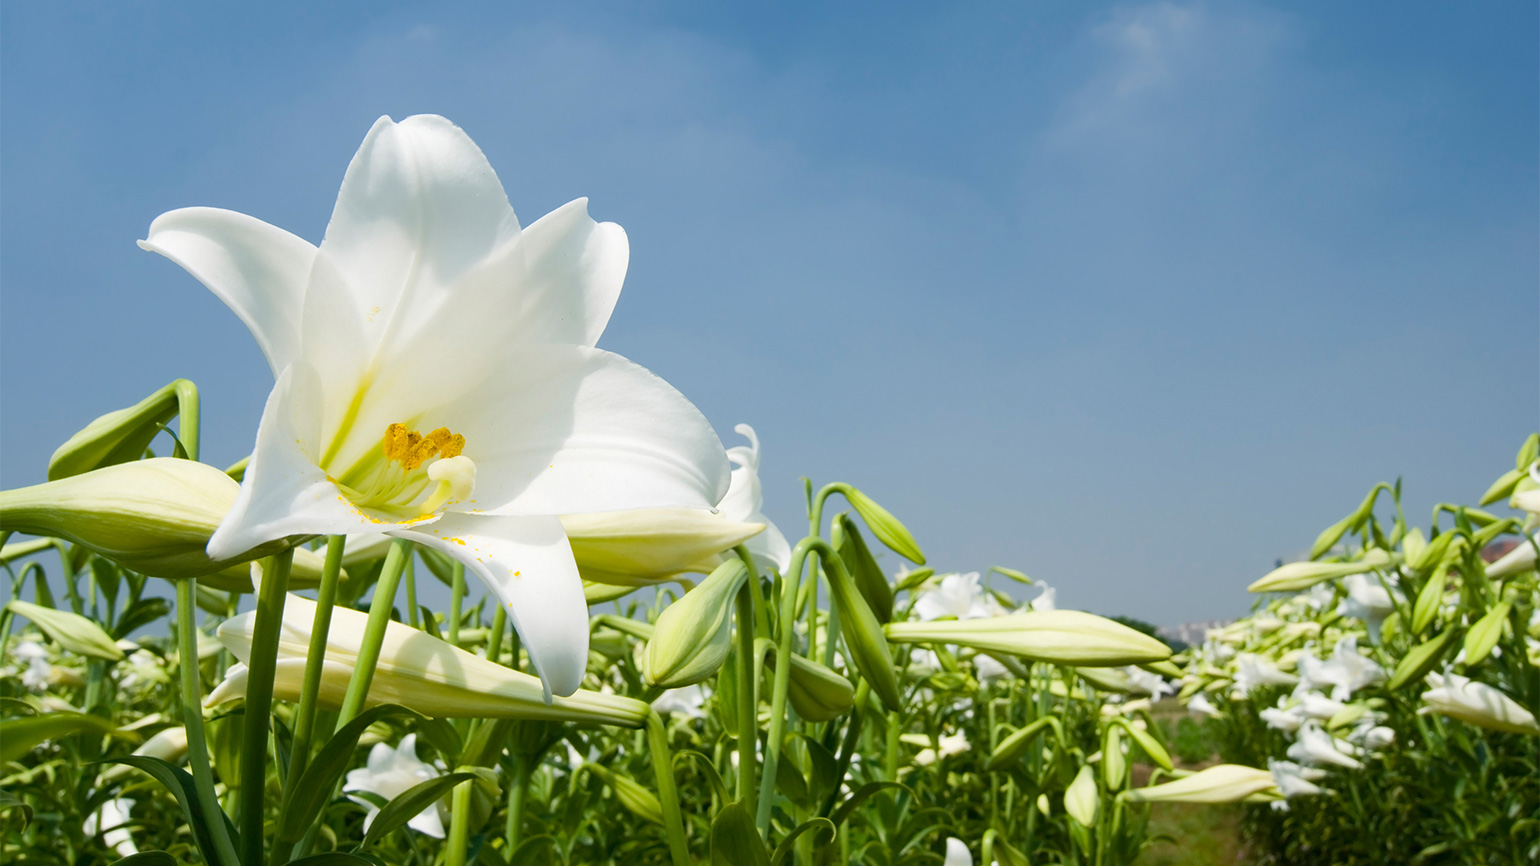 Easter lilies under a bright, blue sky